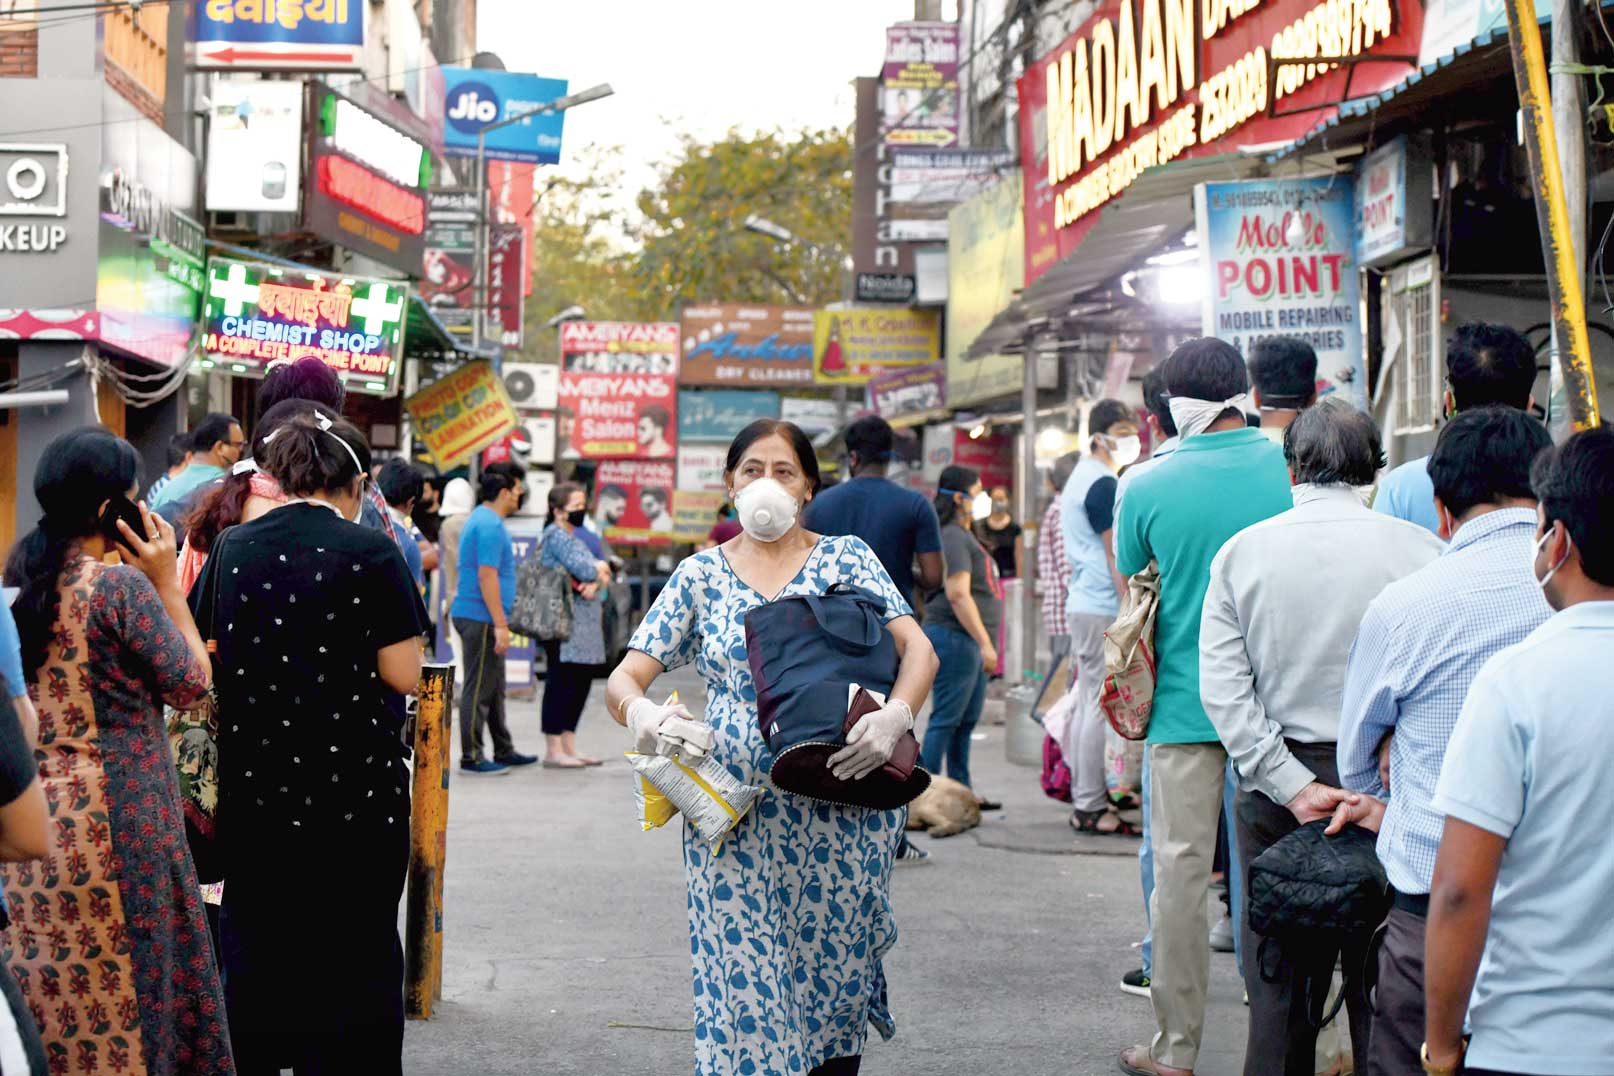 People comes out from their houses in Noida on Wednesday during the lockdown after the Uttar Pradesh government order to seal hotspots in 15 districts to control the spread of coronavirus.